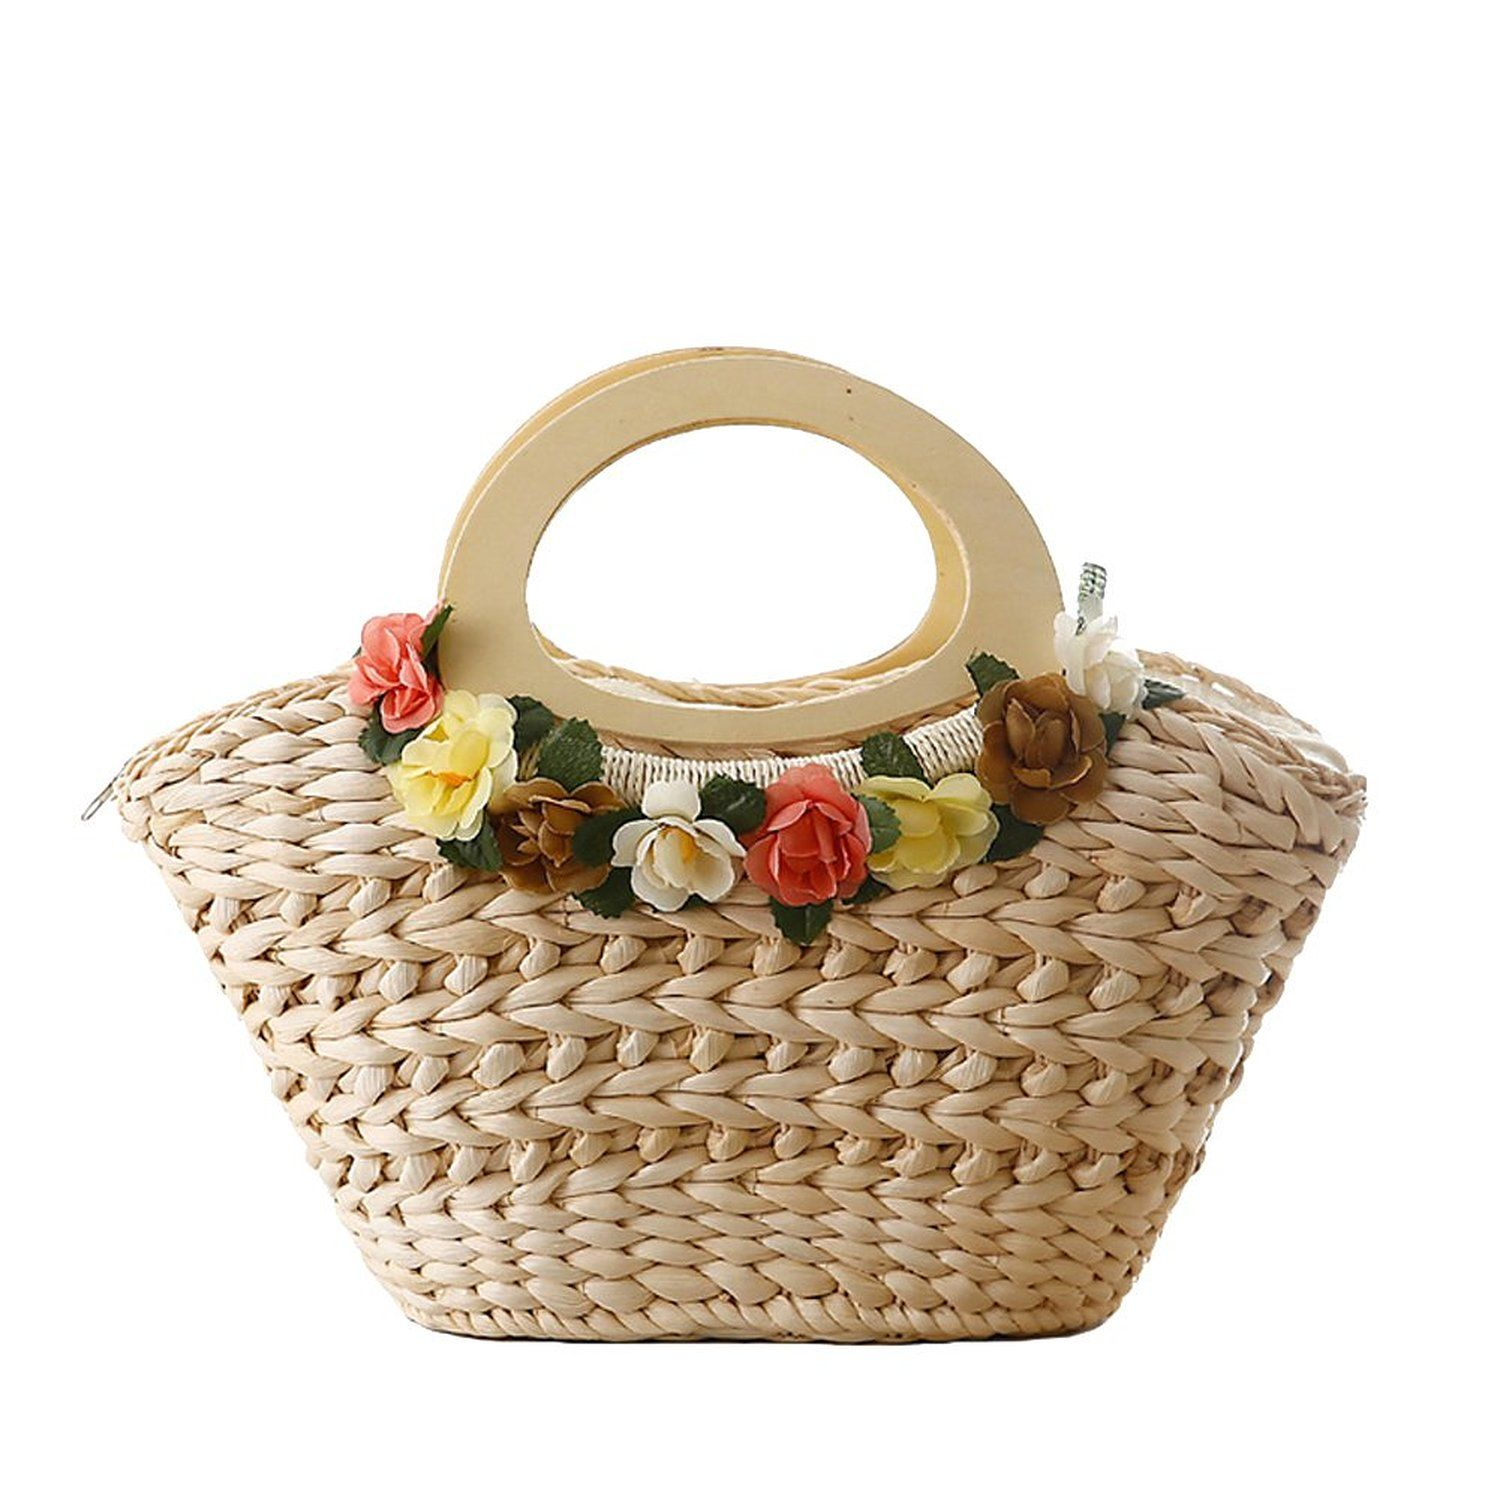 Tonwhar® Flower Decoration Natural Corn Husk Straw Bag ...